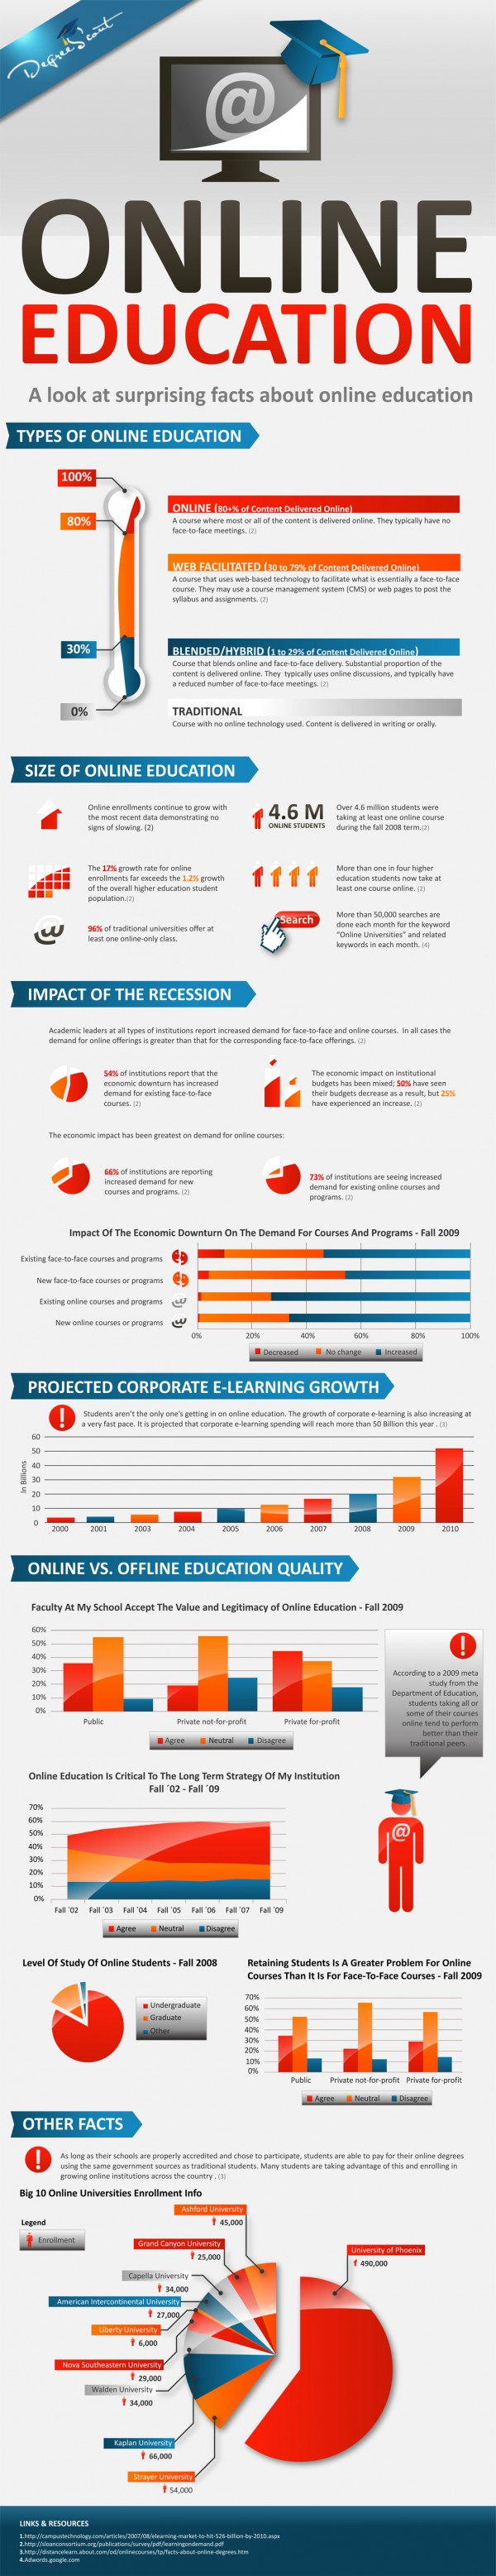 Surprising Facts About Online Education